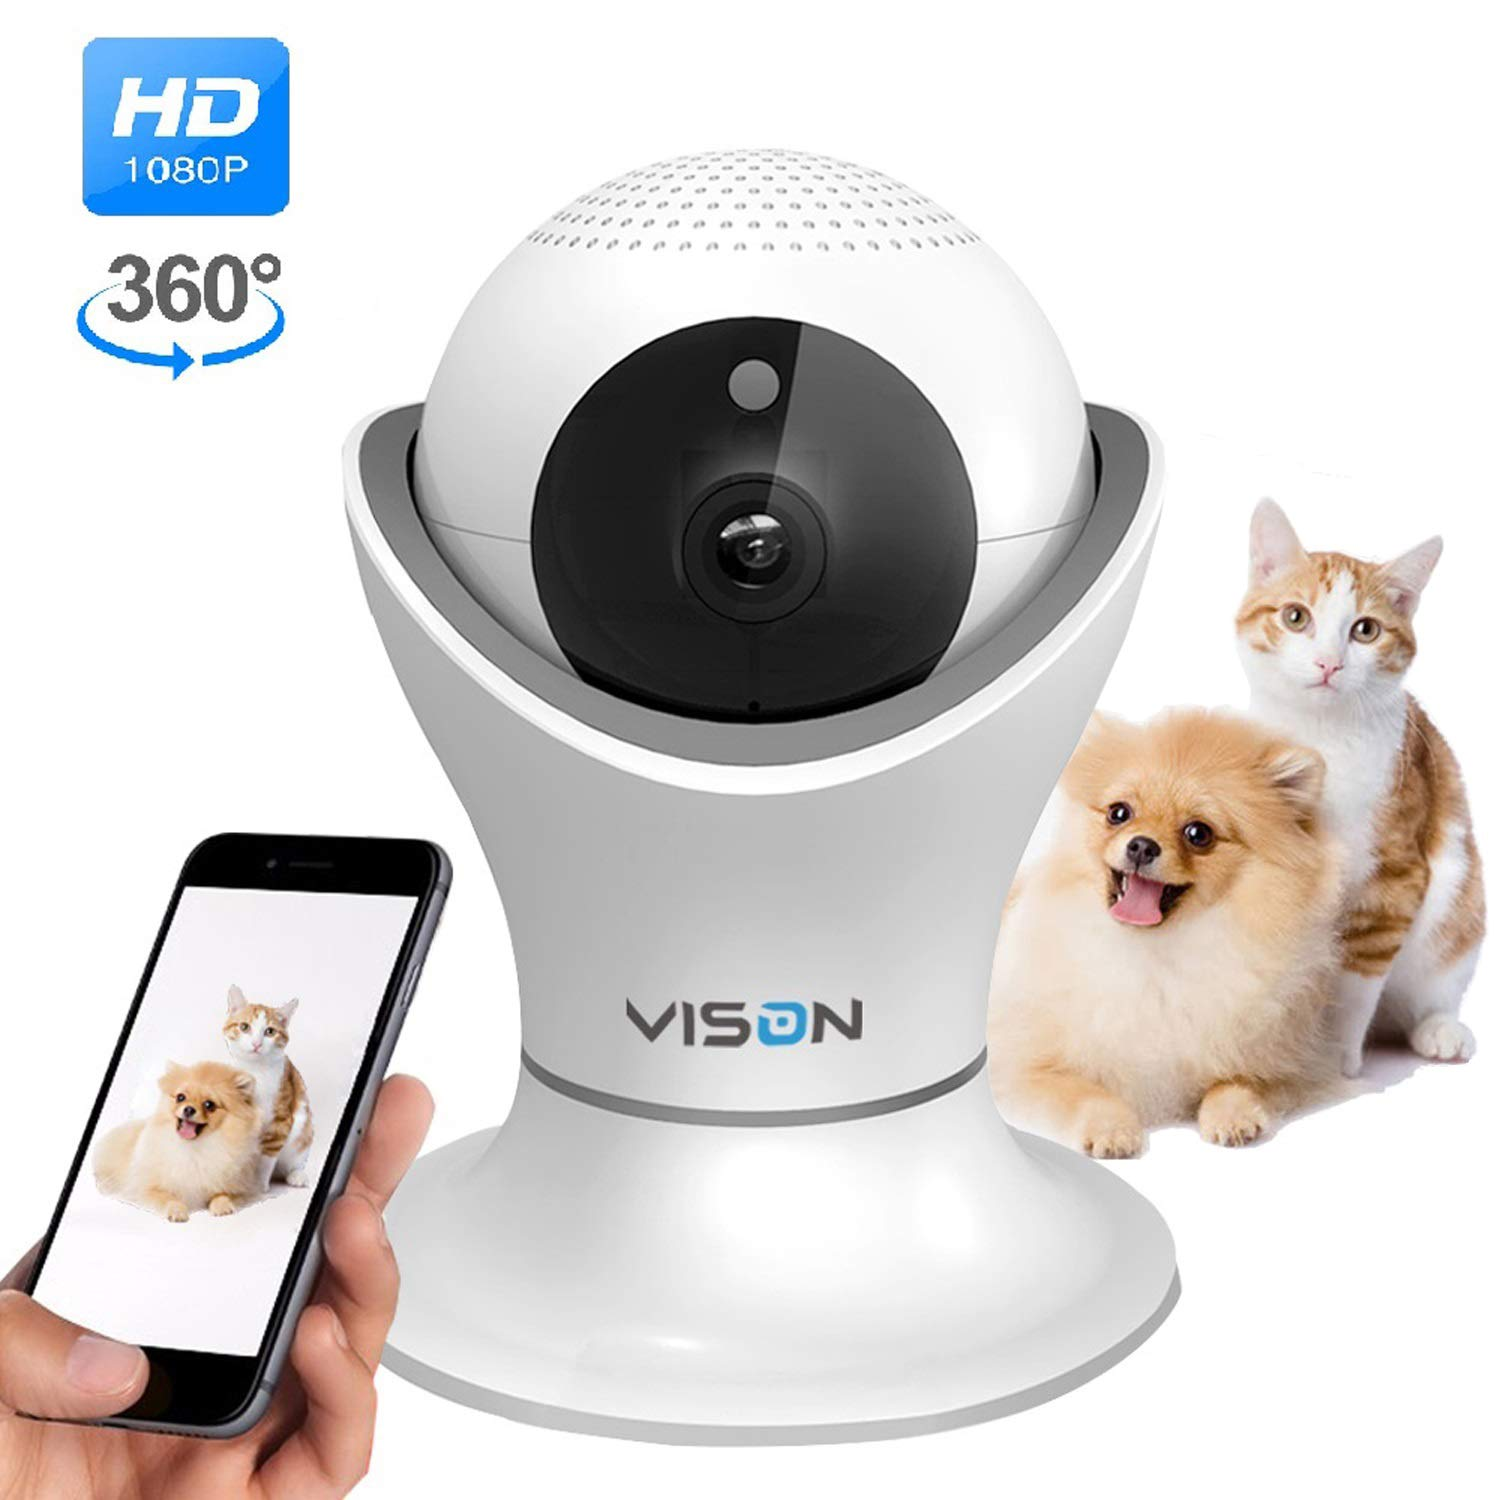 VINSION HD 1080p Pet Camera,Dog Camera 360° Pet Monitor Indoor Cat Camera with Night Vision and Two Way Audio by VINSION